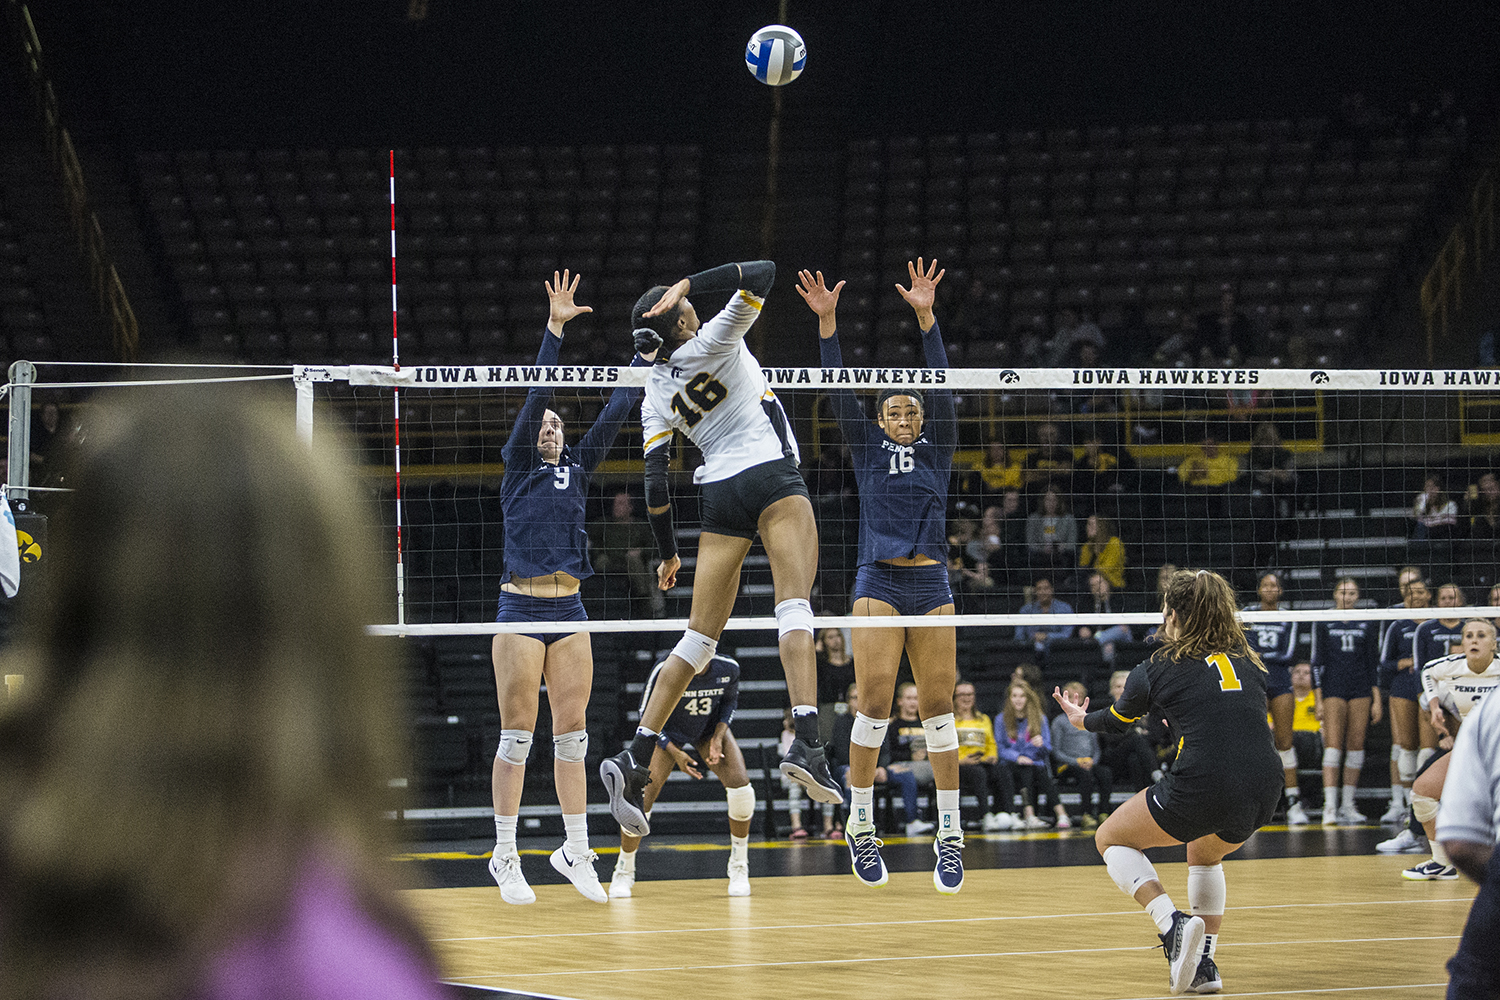 Iowa+senior+Taylor+Louis+spikes+the+ball+during+a+volleyball+match+between+Iowa+and+Penn+State+at+Carver-Hawkeye+Arena+on+Saturday%2C+Nov.+3%2C+2018.+The+Hawkeyes+were+shut+out+by+the+Nittany+Lions%2C+3-0.